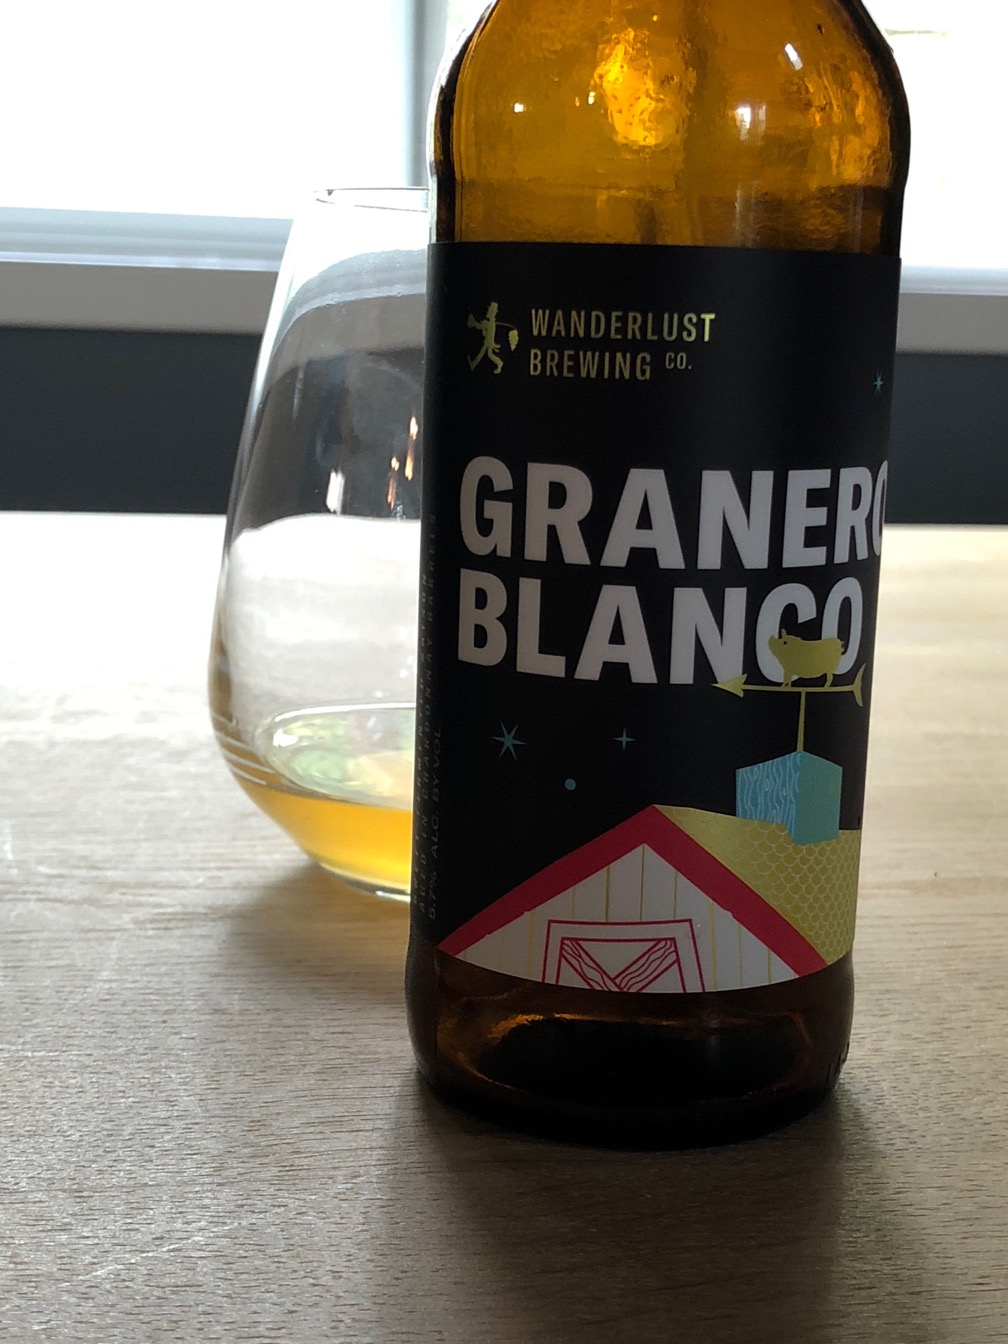 A photo of a bottle of Granero Blanco from Wanderlust Brewing.